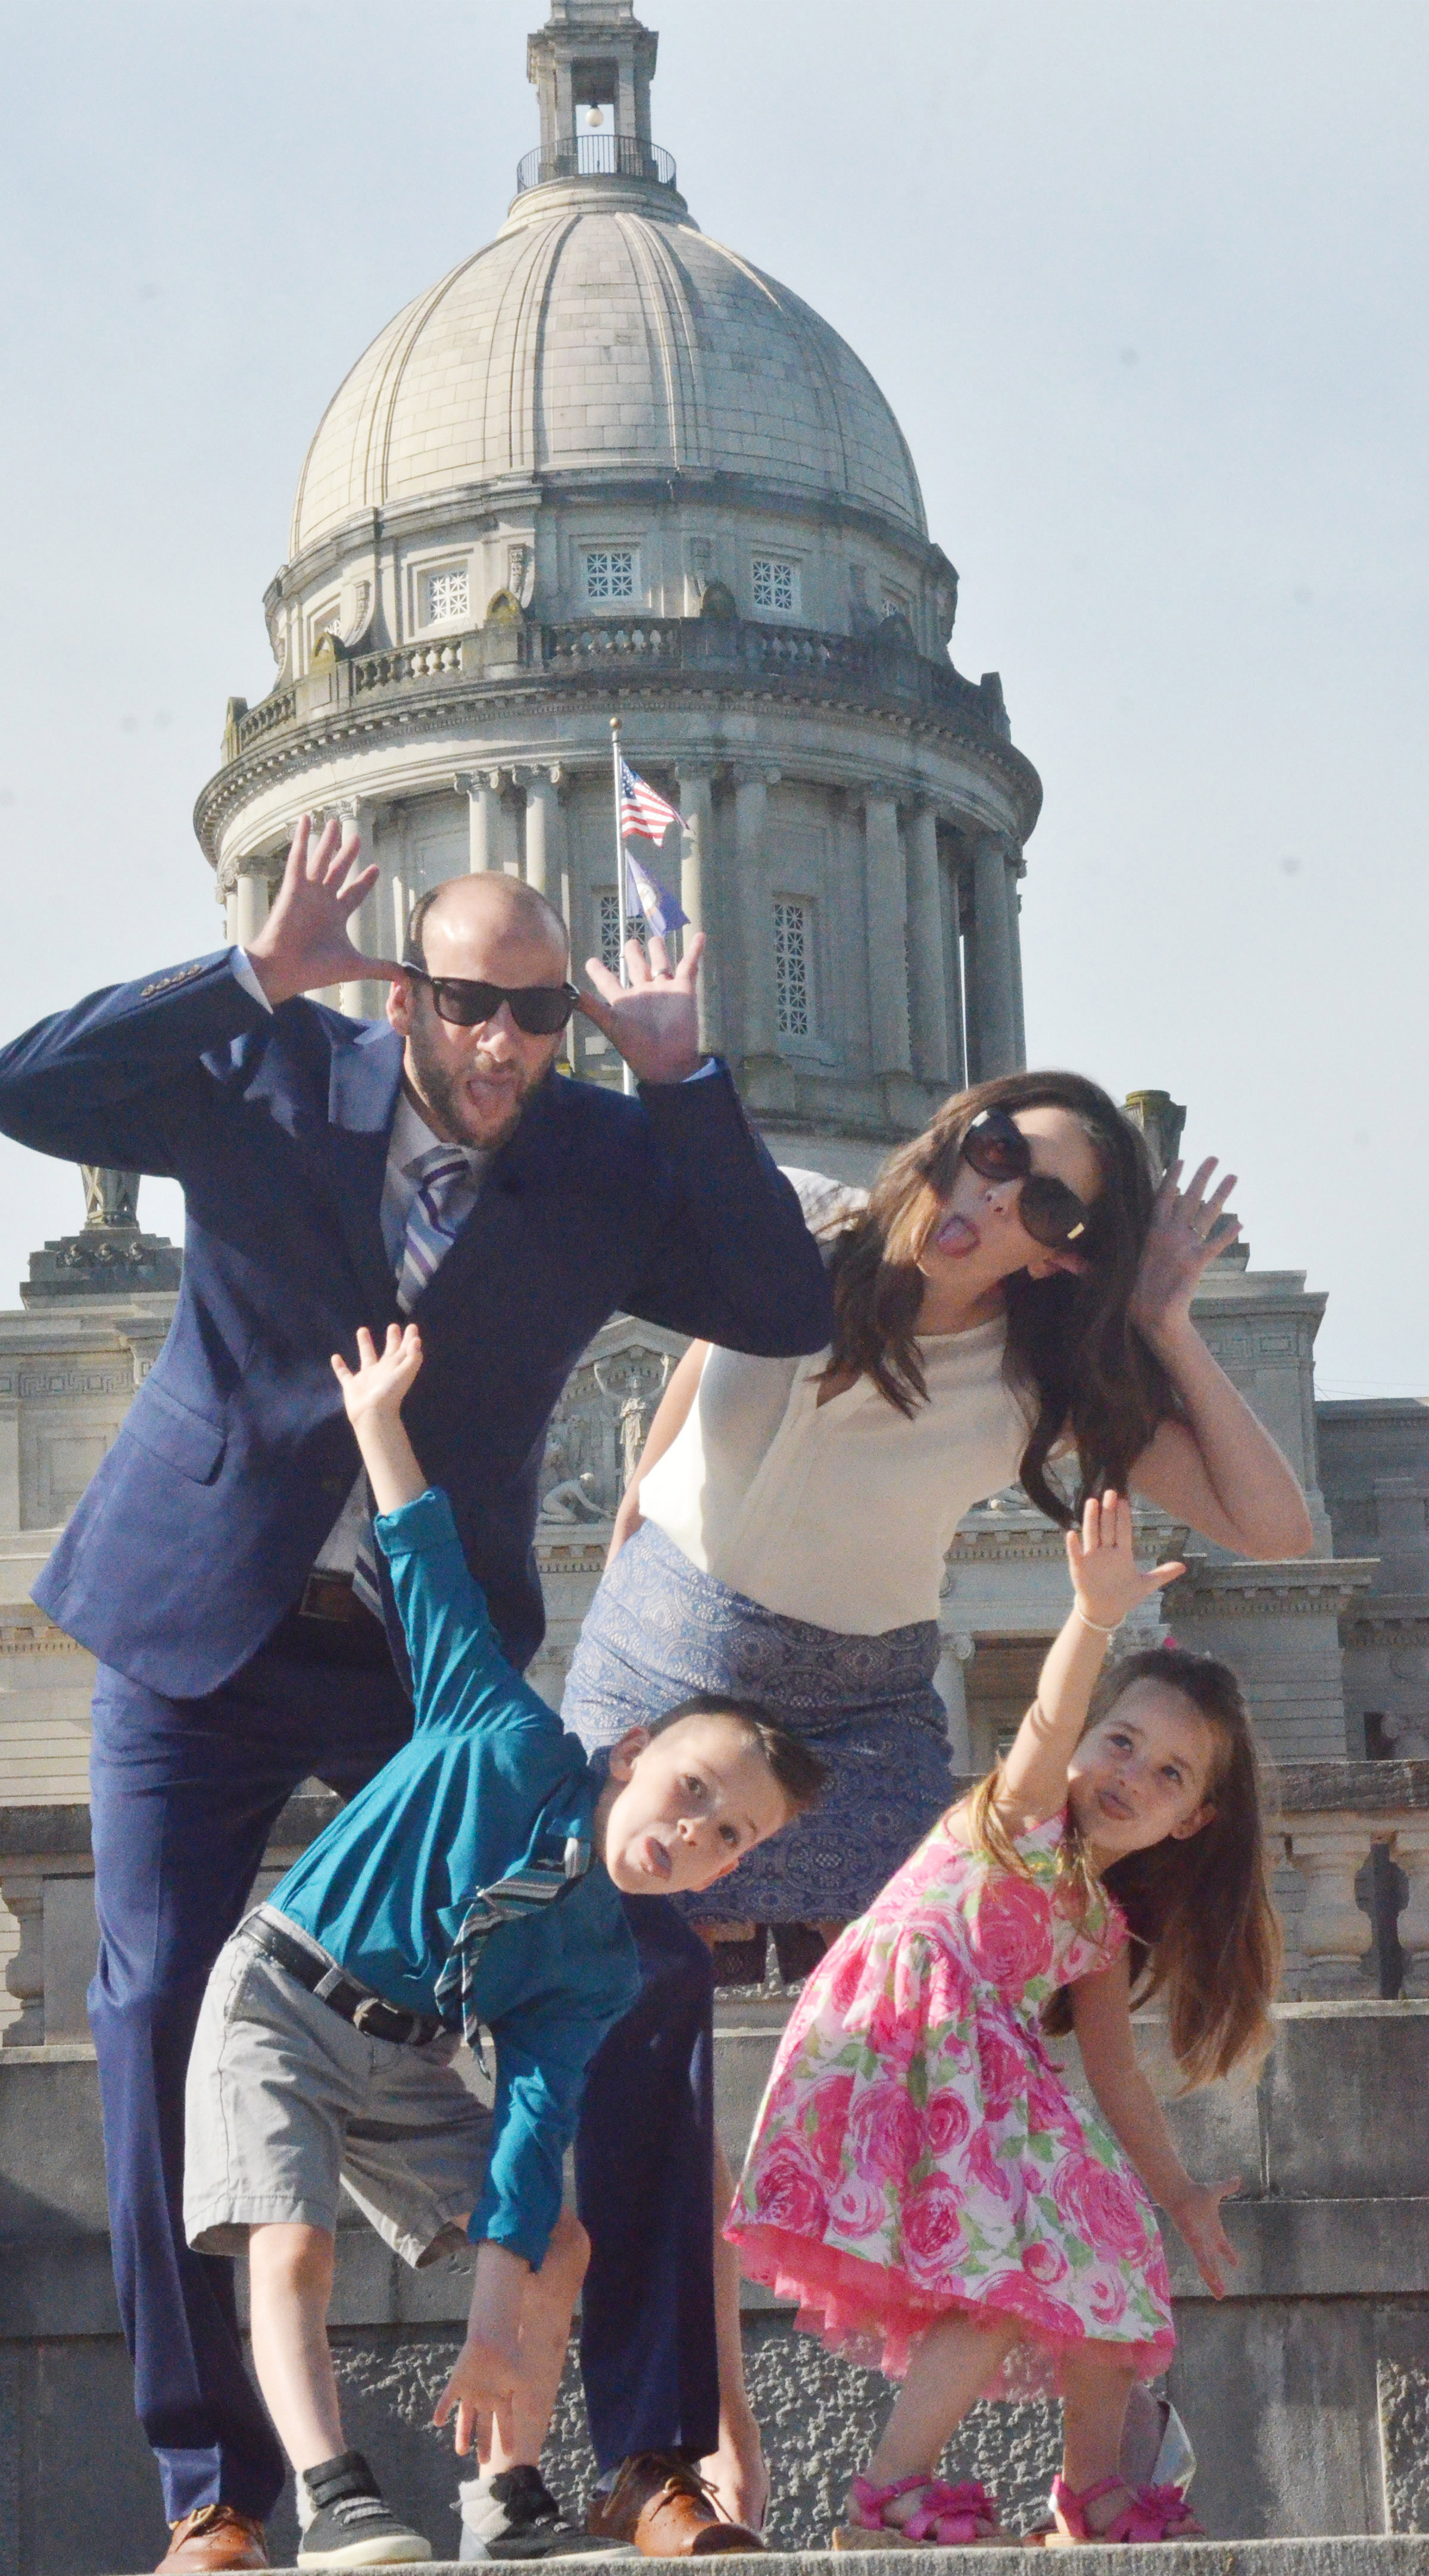 CHS teacher Ben Davis and his wife, Stephanie, pose for a silly photo in front of the Kentucky capitol with their children Cash and Lylah.